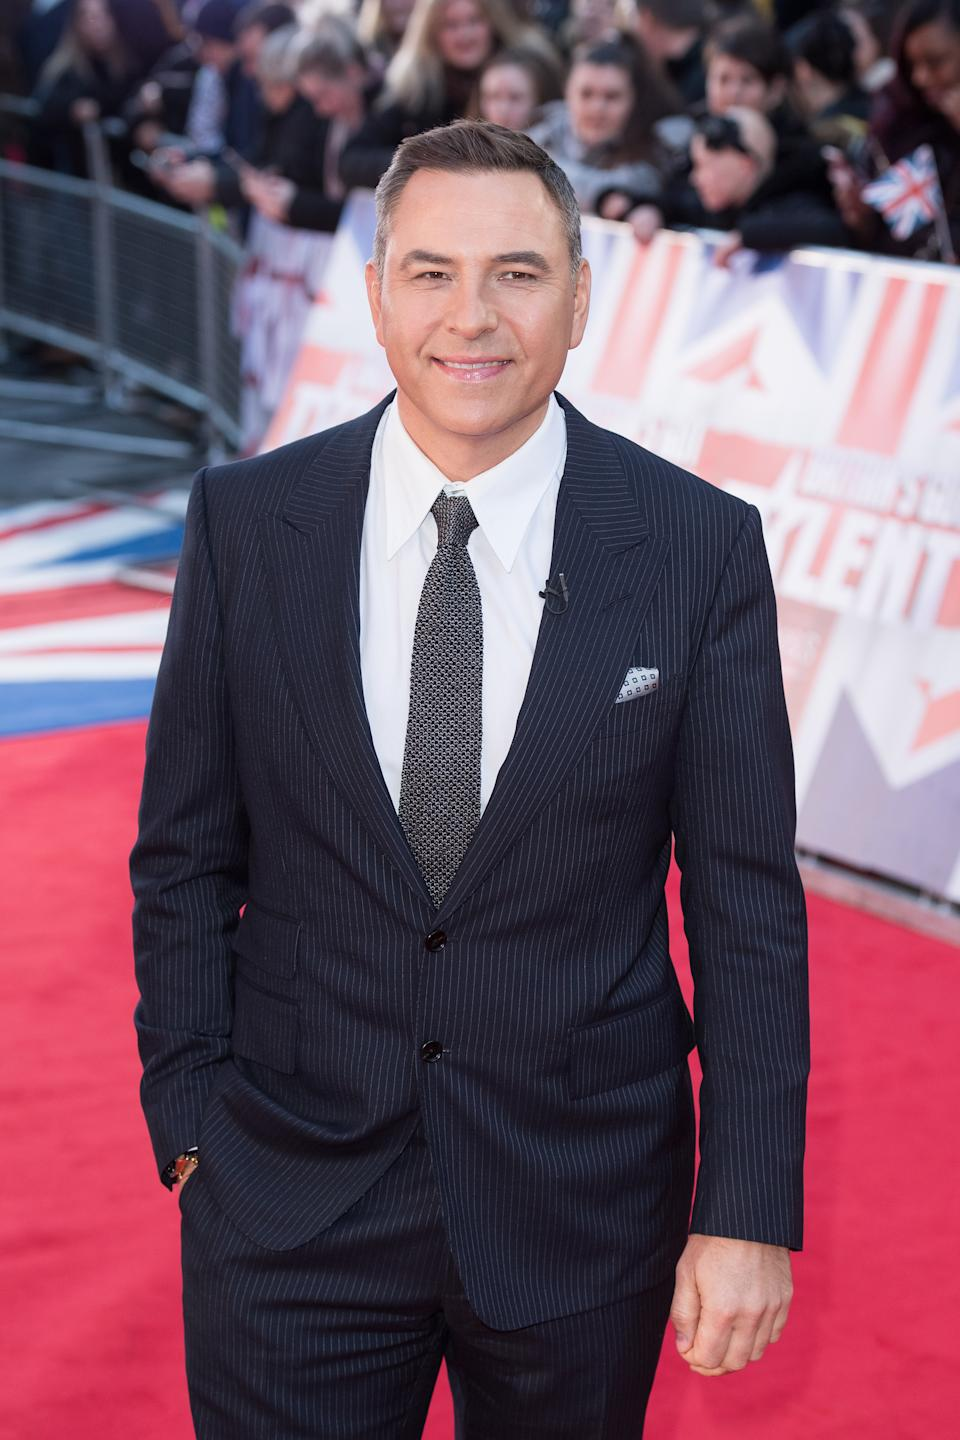 David Walliams attends the Britain's Got Talent 2020 photocall at London Palladium on January 19, 2020 in London, England. (Photo by Jeff Spicer/WireImage)